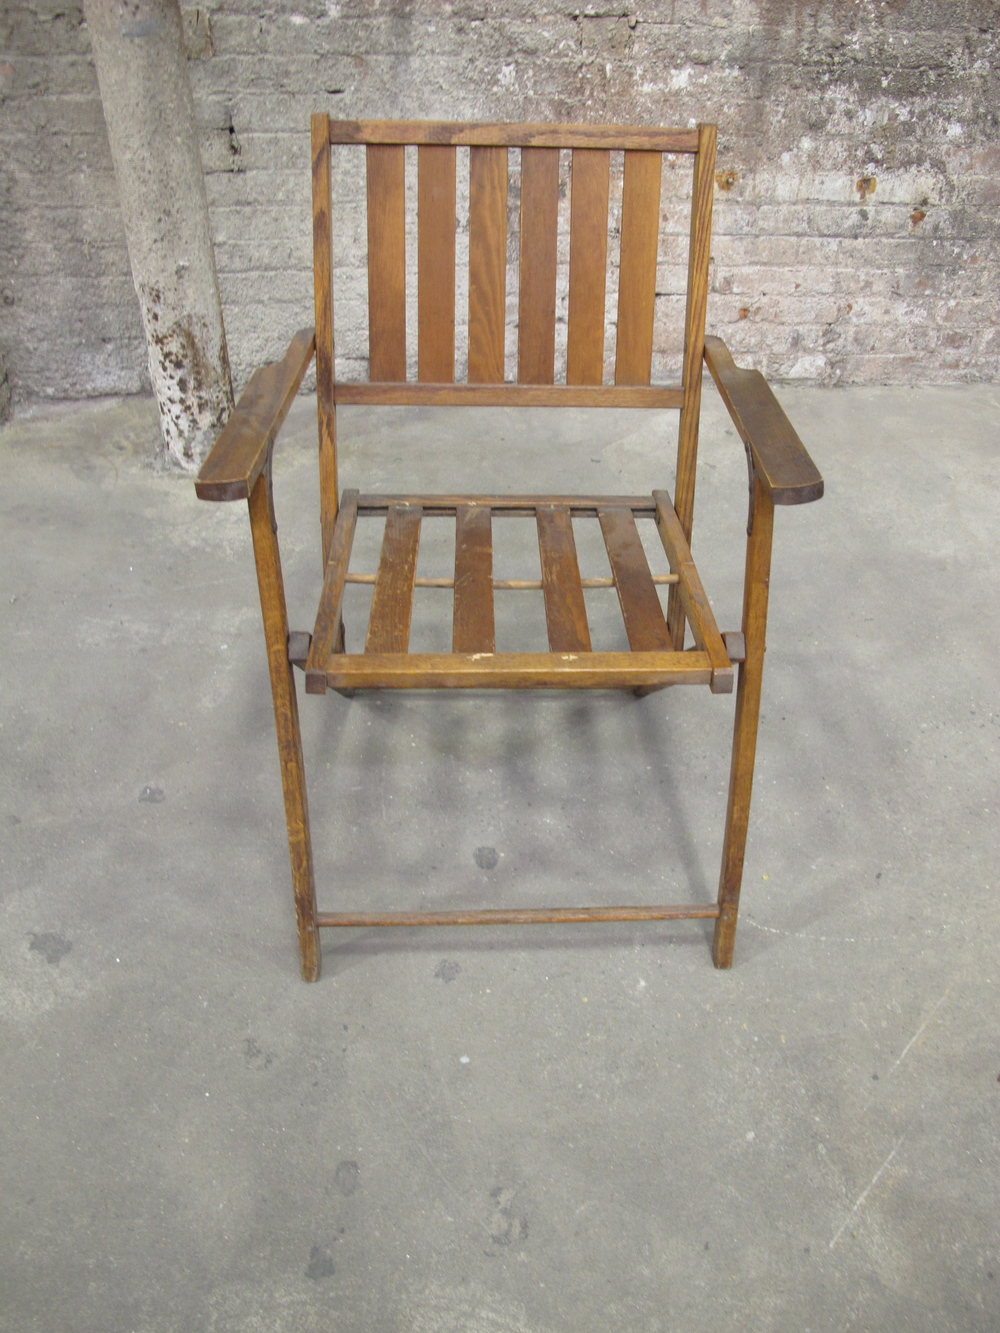 Wood folding beach chair $50